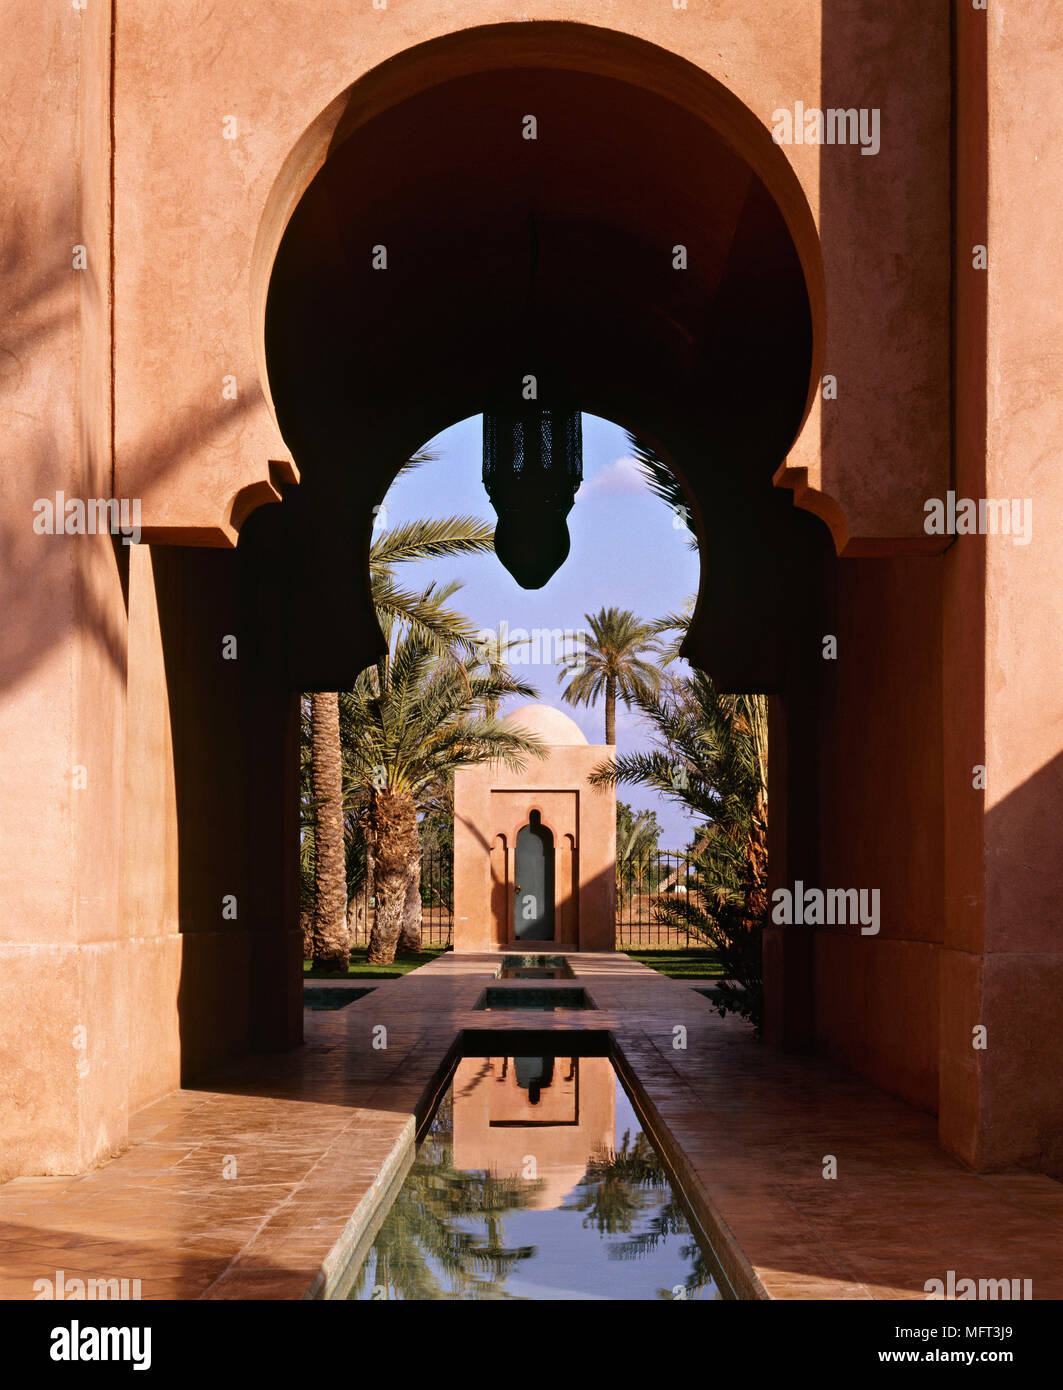 Exterior Moroccan house palm trees water pool Exteriors architecture